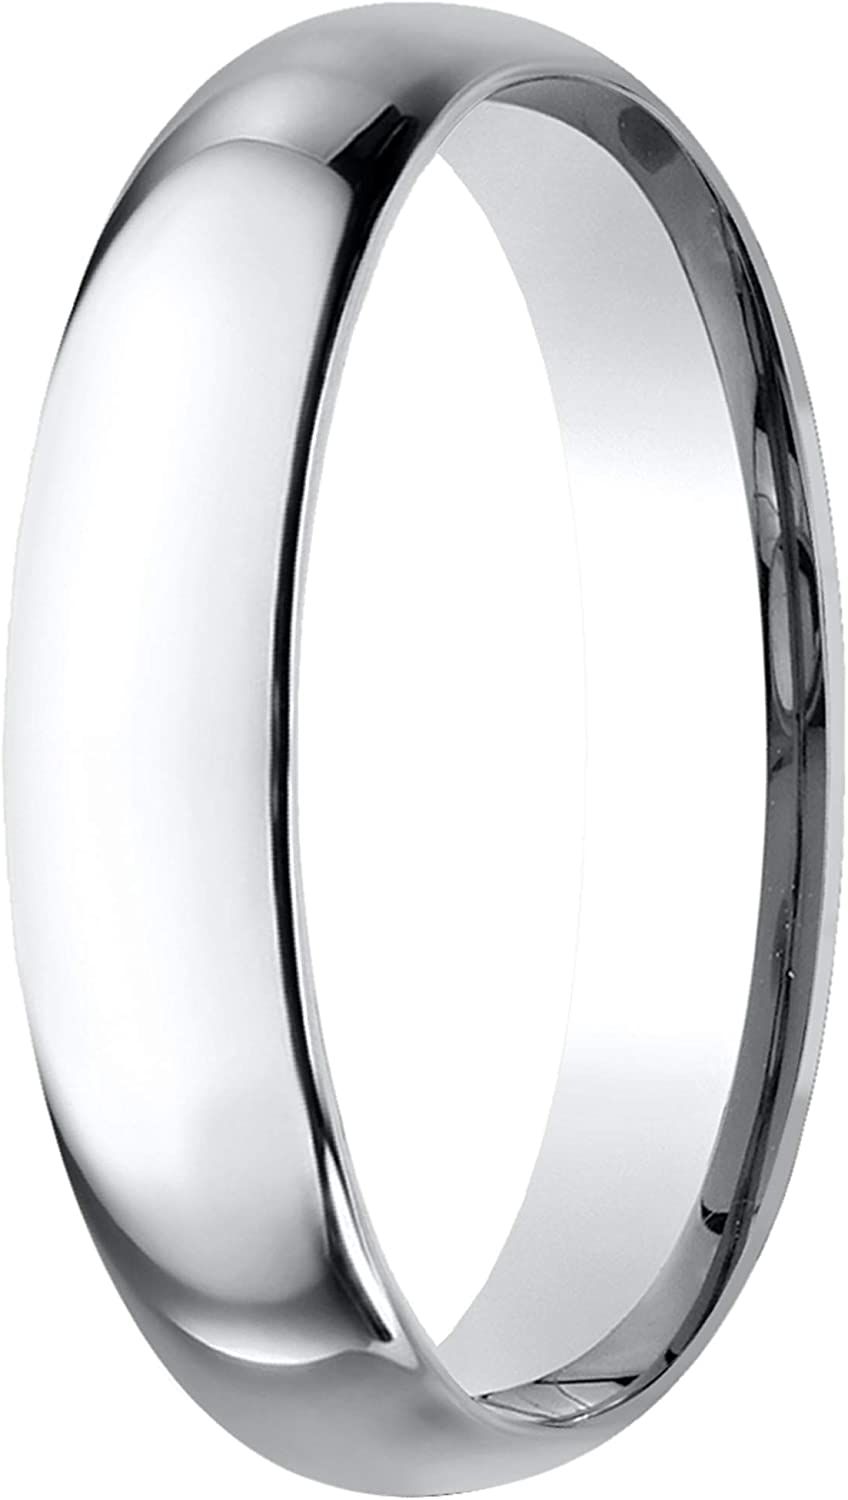 Prism Jewel 4.30mm D Shape Unisex Plain Stackable Wedding Band Crafted In 10k Gold